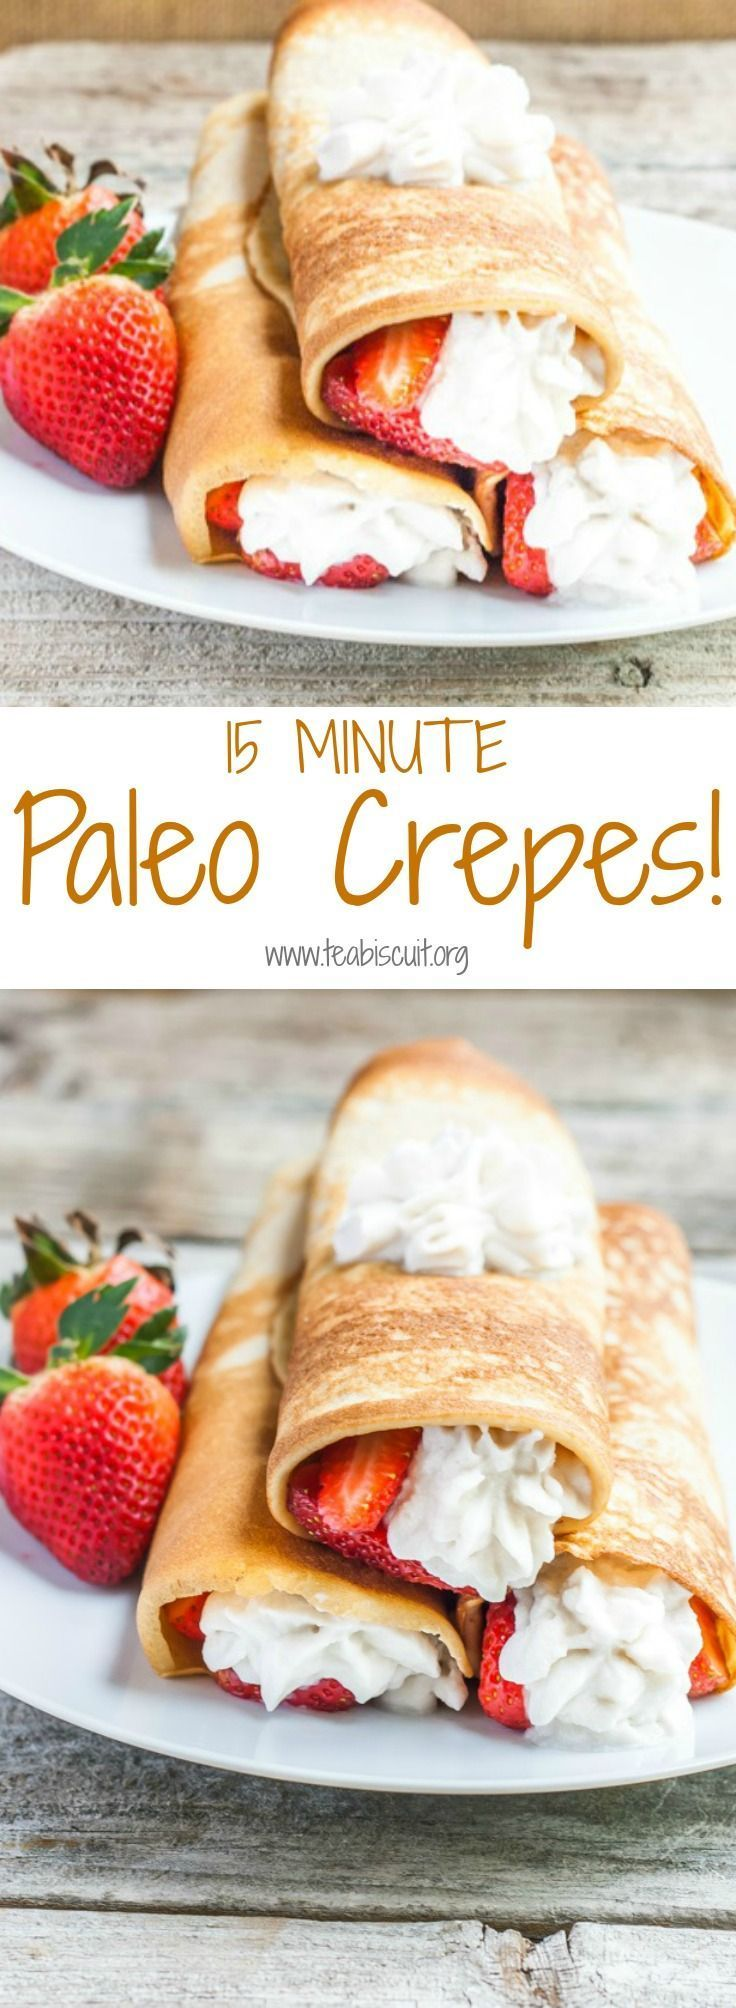 So fast and easy, make Paleo crepes in less than 15 Minutes! A Delicious Paelo Dessert made from scratch. Optional Coconut whipped cream recipe included!| Paleo | Grain Free | Gluten Free